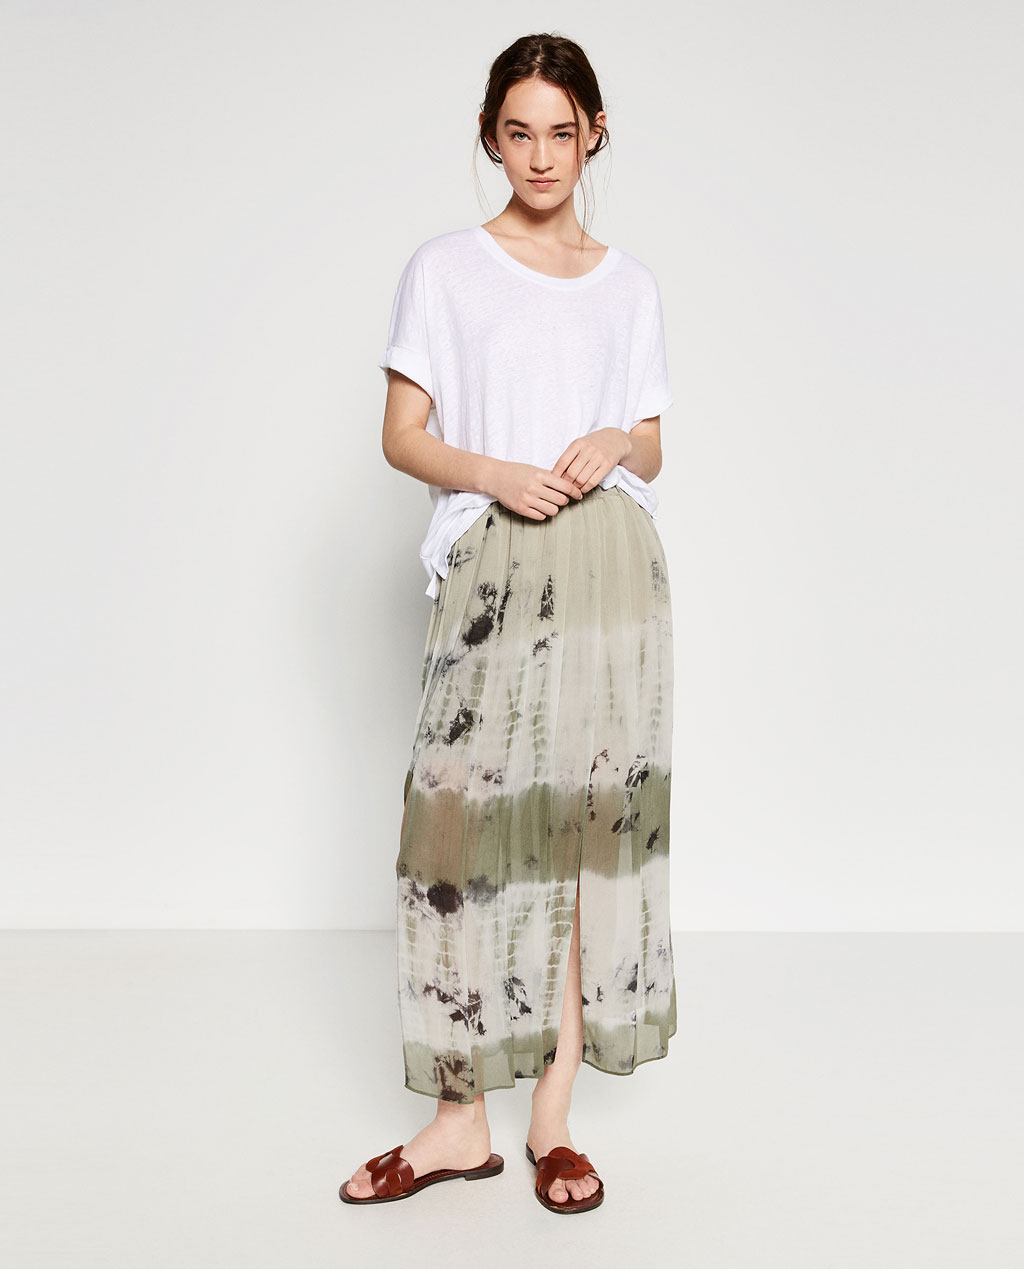 long-slit-skirts-zara-tie-dye-womens-latest-online-shopping